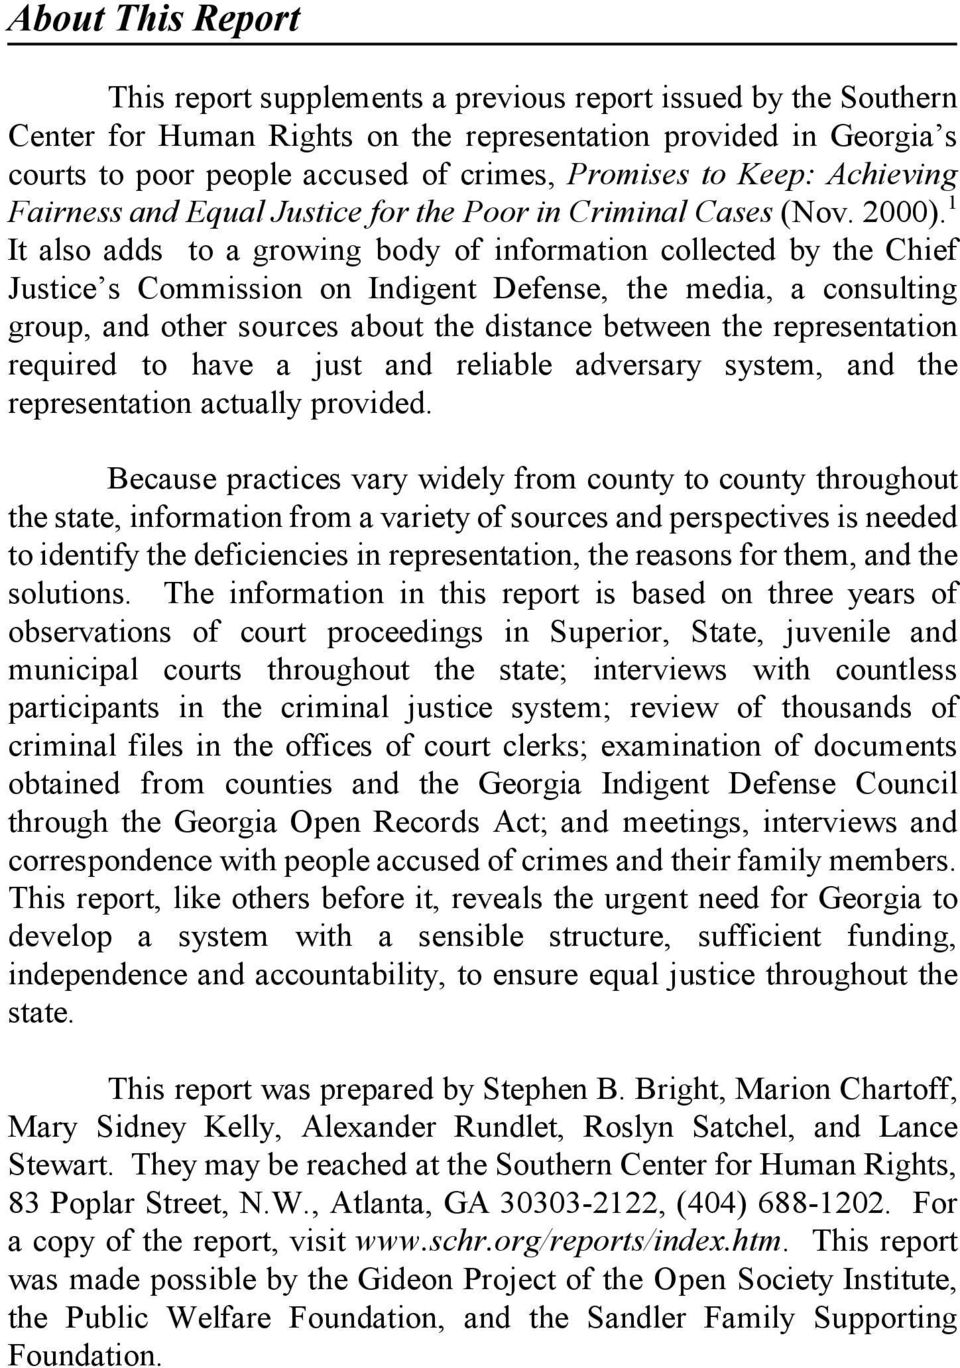 1 It also adds to a growing body of information collected by the Chief Justice s Commission on Indigent Defense, the media, a consulting group, and other sources about the distance between the